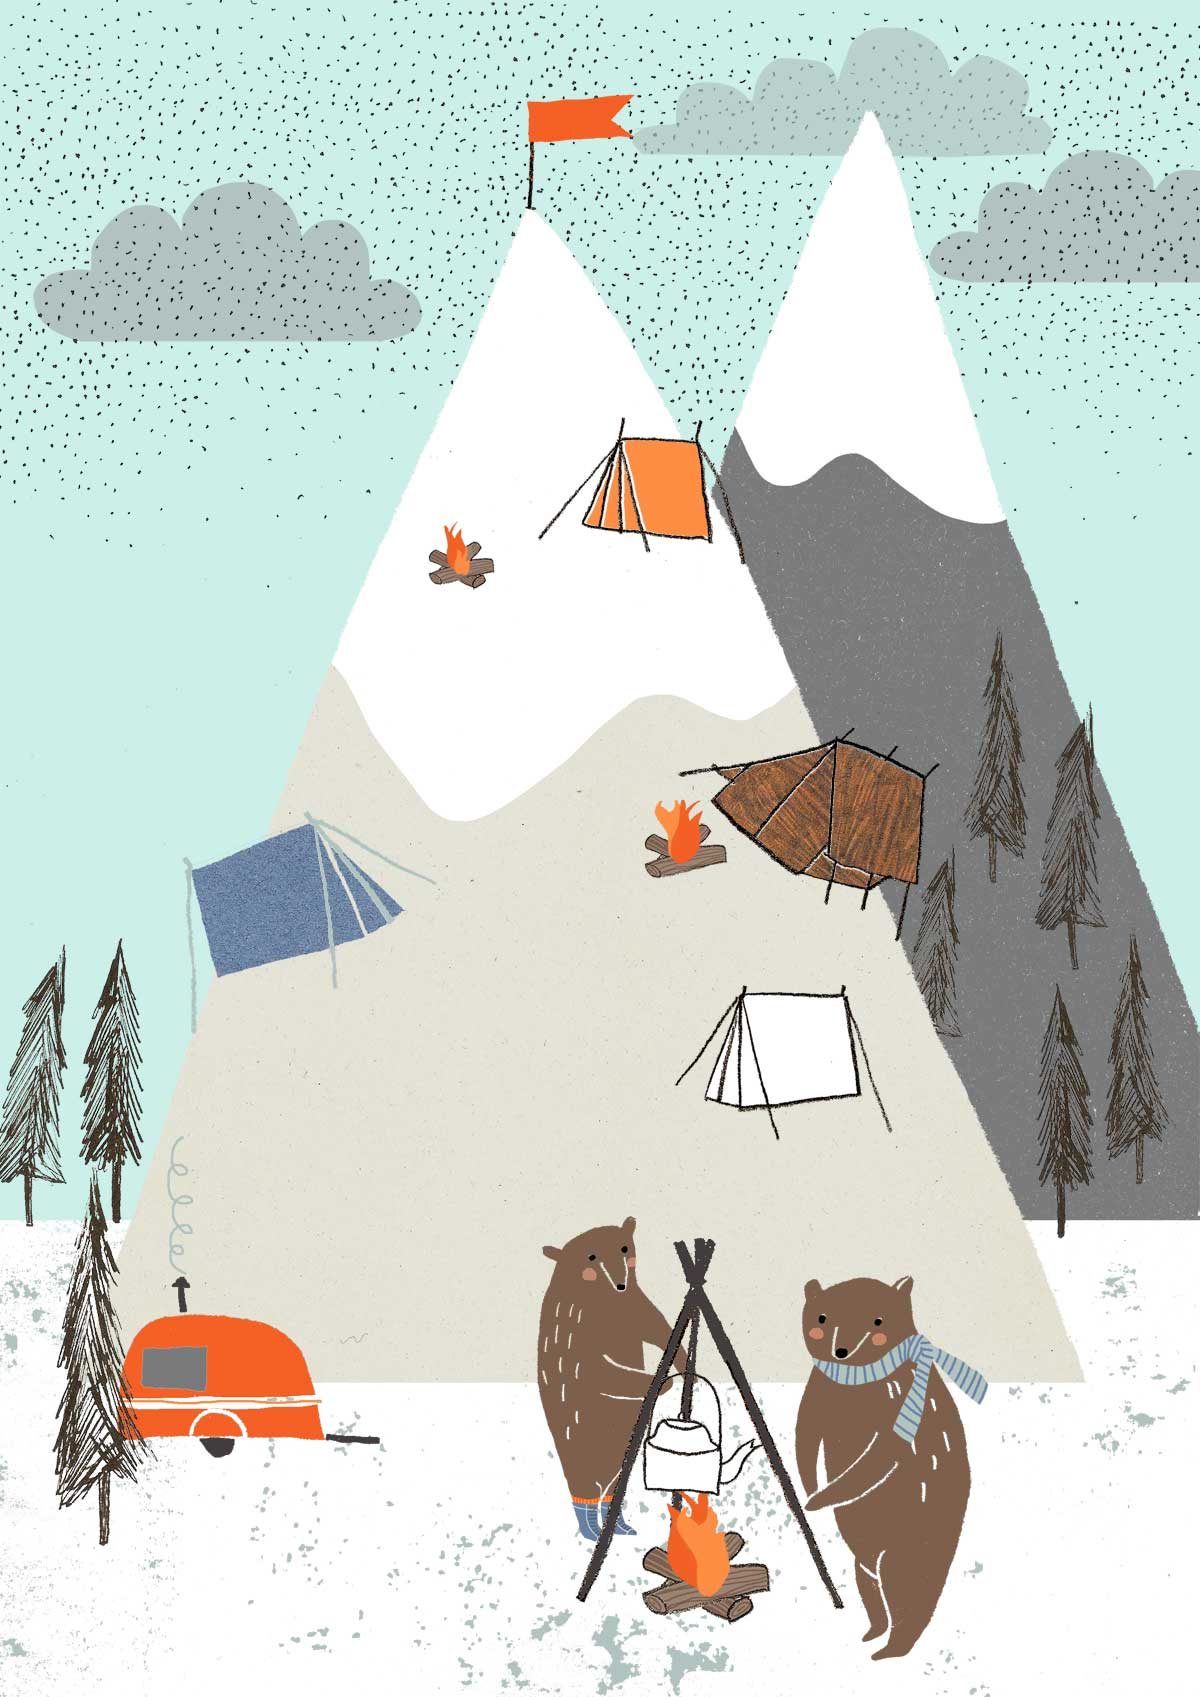 Winter Camping by Kim Welling